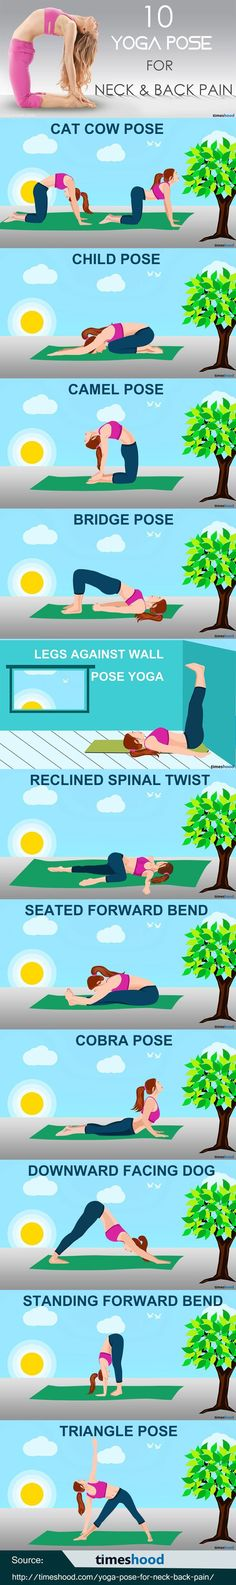 11 easy Yoga pose for neck and back pain to feel more active. Simple Yoga Pose f...